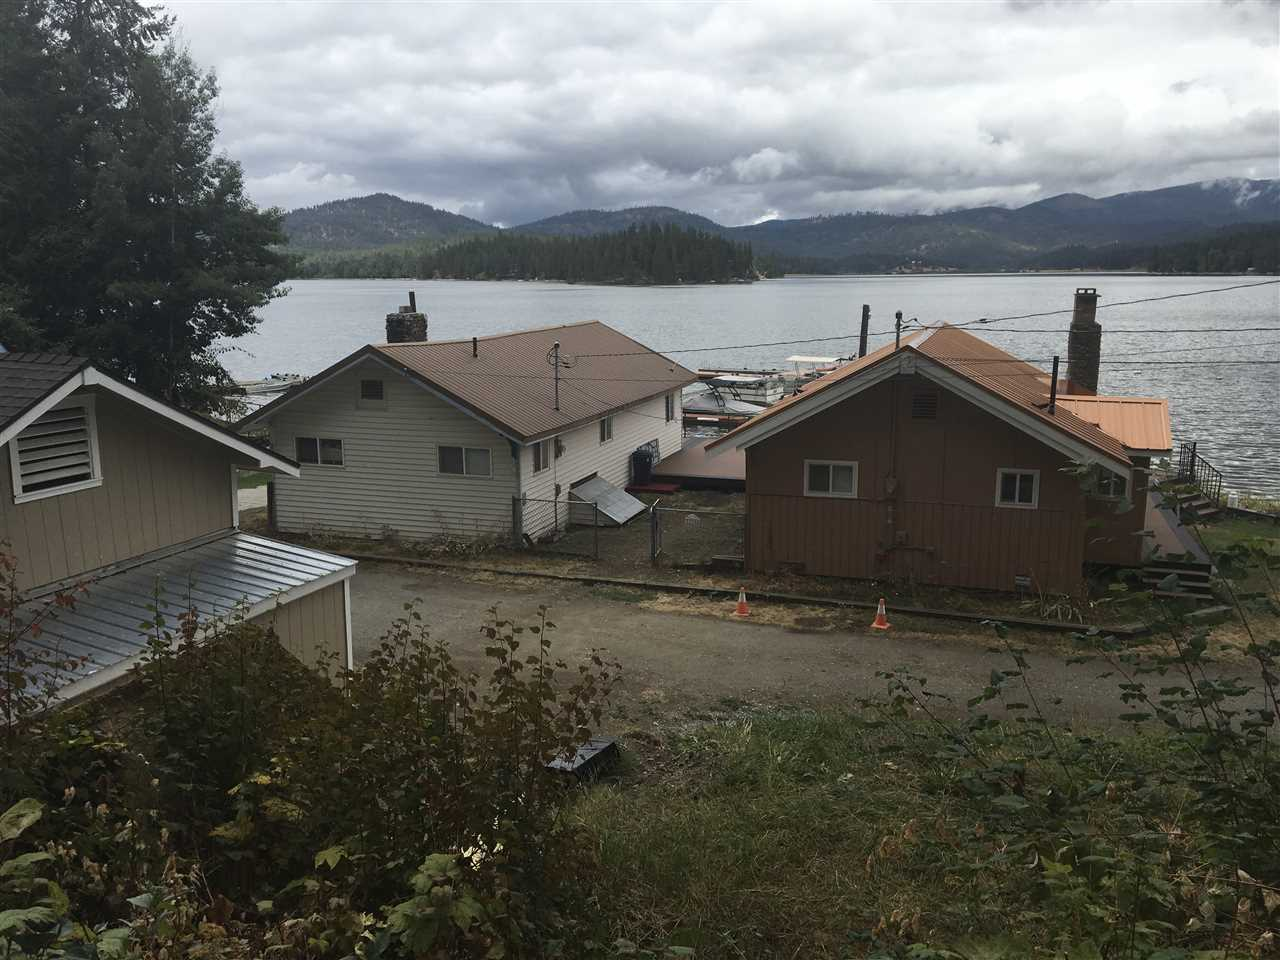 Single Family Home for Sale at 22704 E Park Beach Road Road 22704 E Park Beach Road Road Newman Lake, Washington 99025 United States